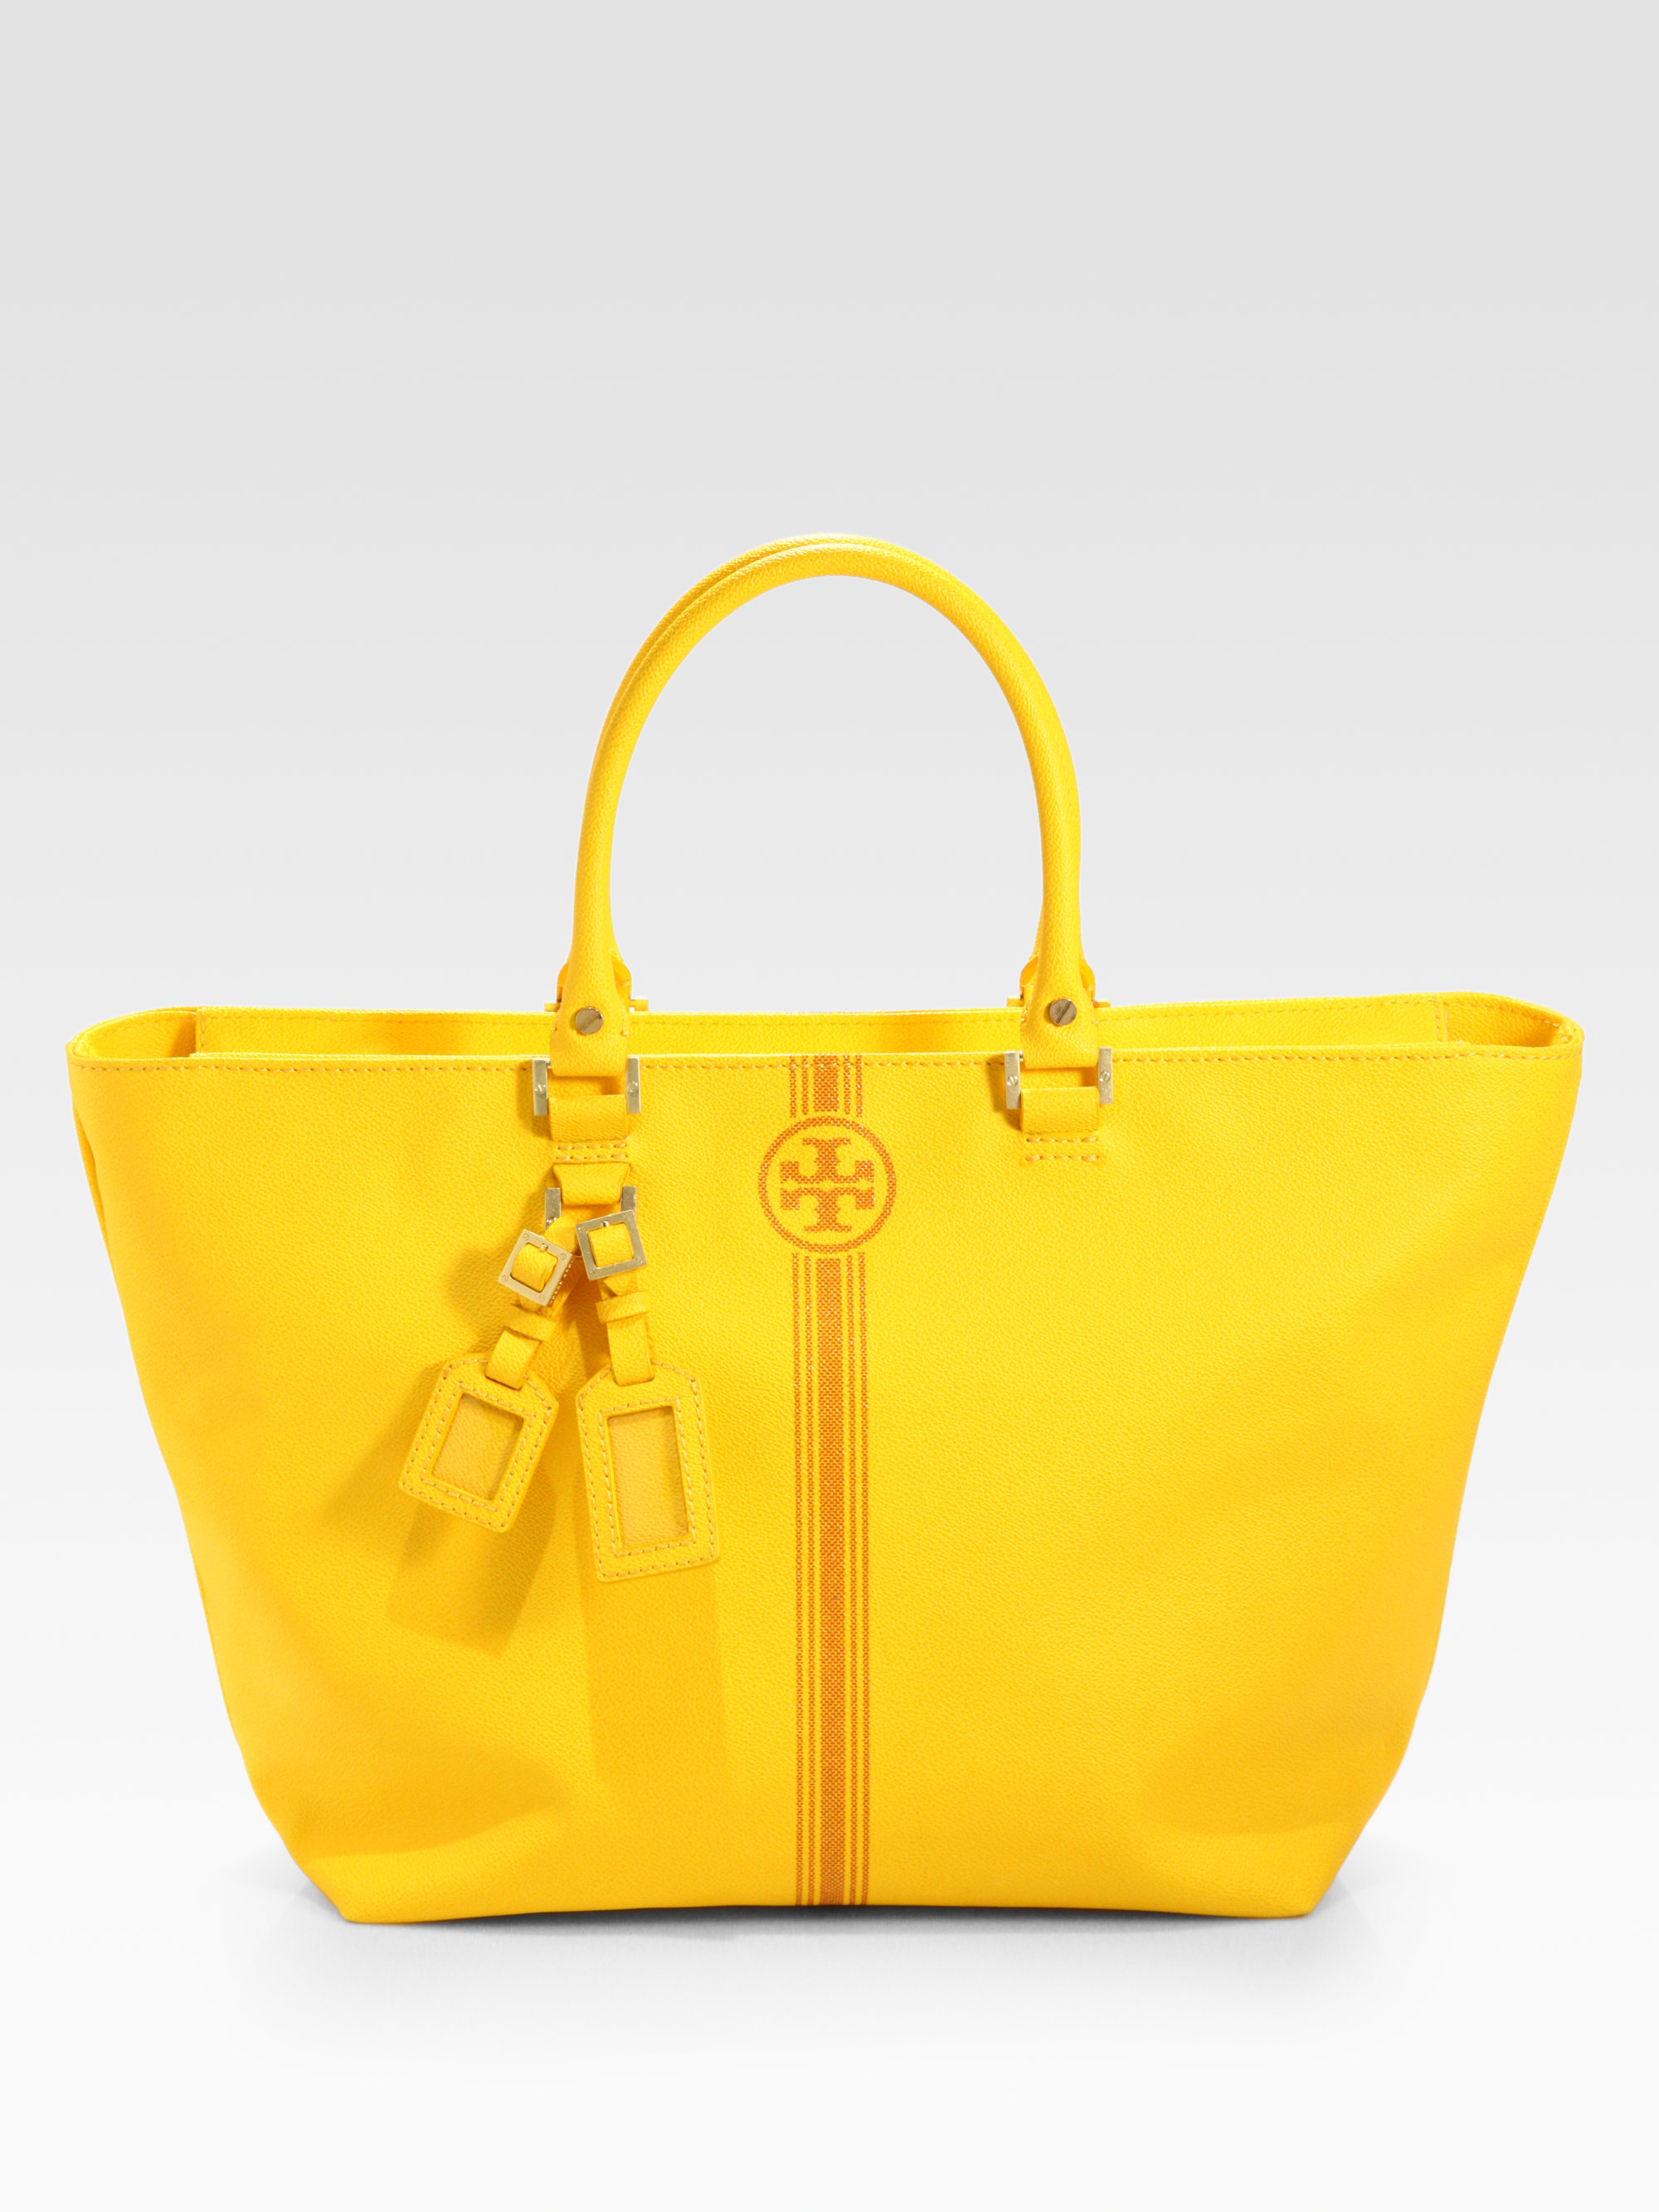 9d9a7a67f3fe Lyst - Tory Burch Roslyn Tote Bag in Yellow